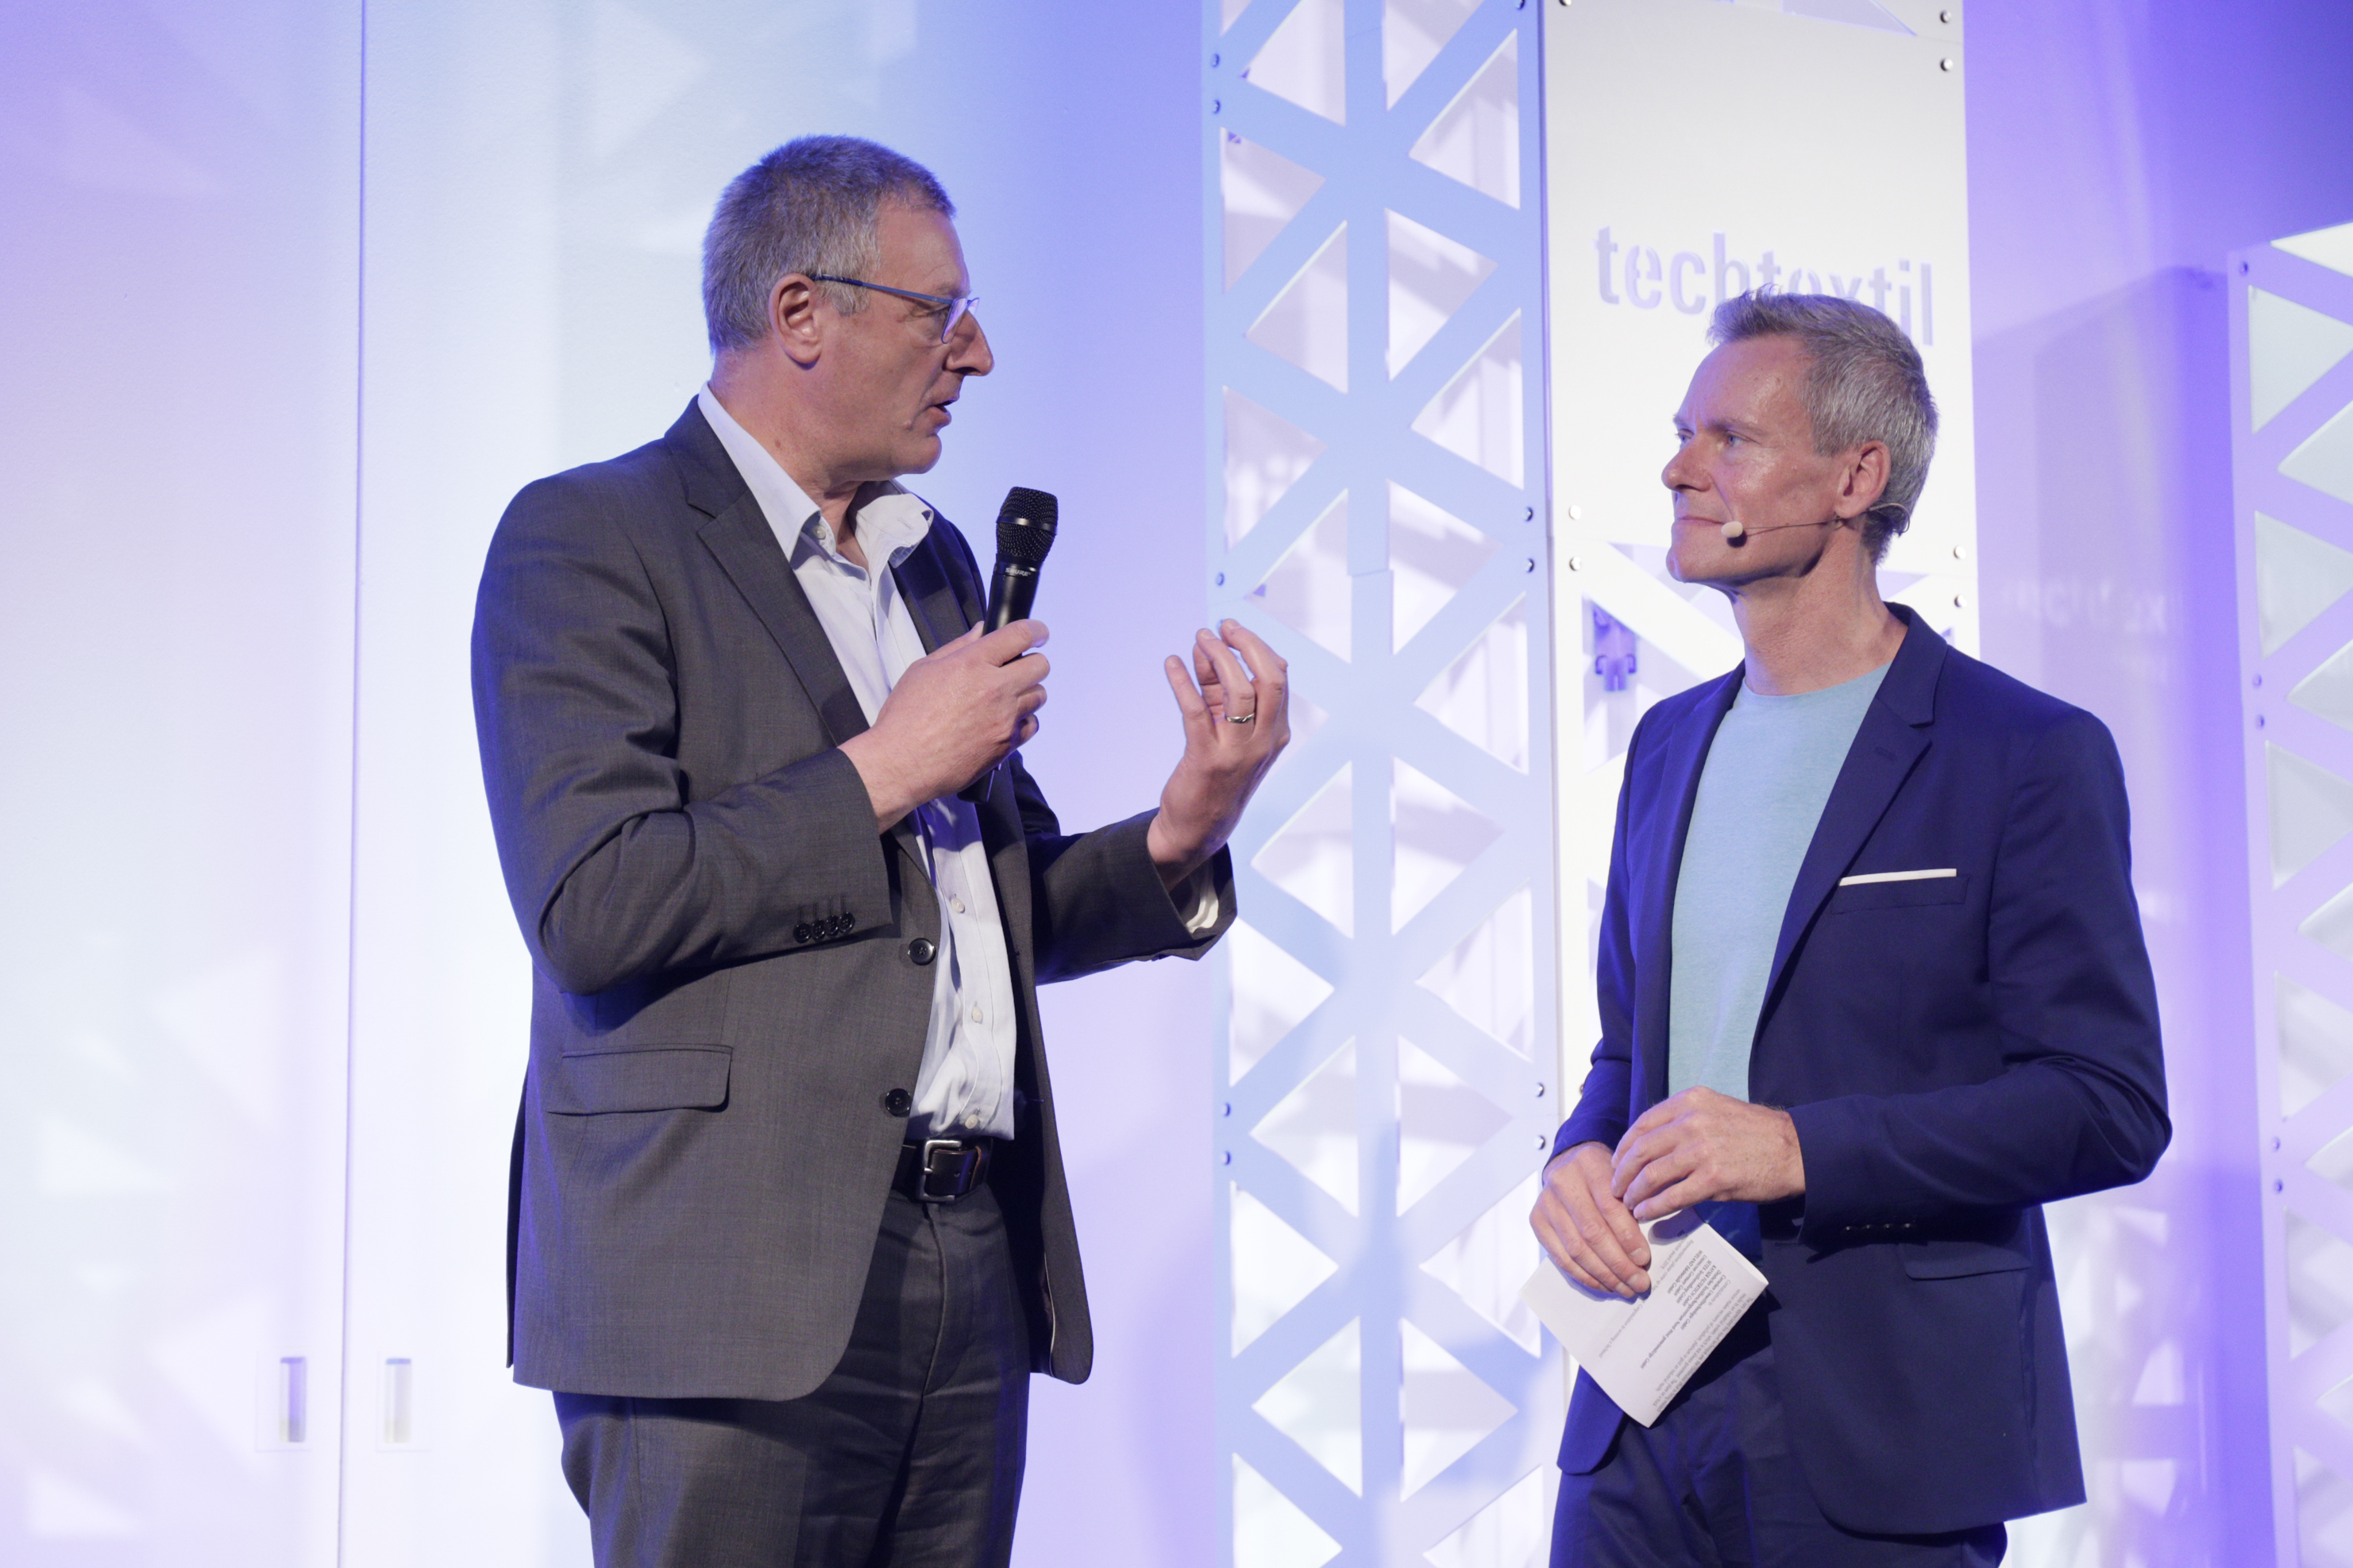 Techtextil Innovationspreis Dr. Jan Laperre, Ingolf Baur